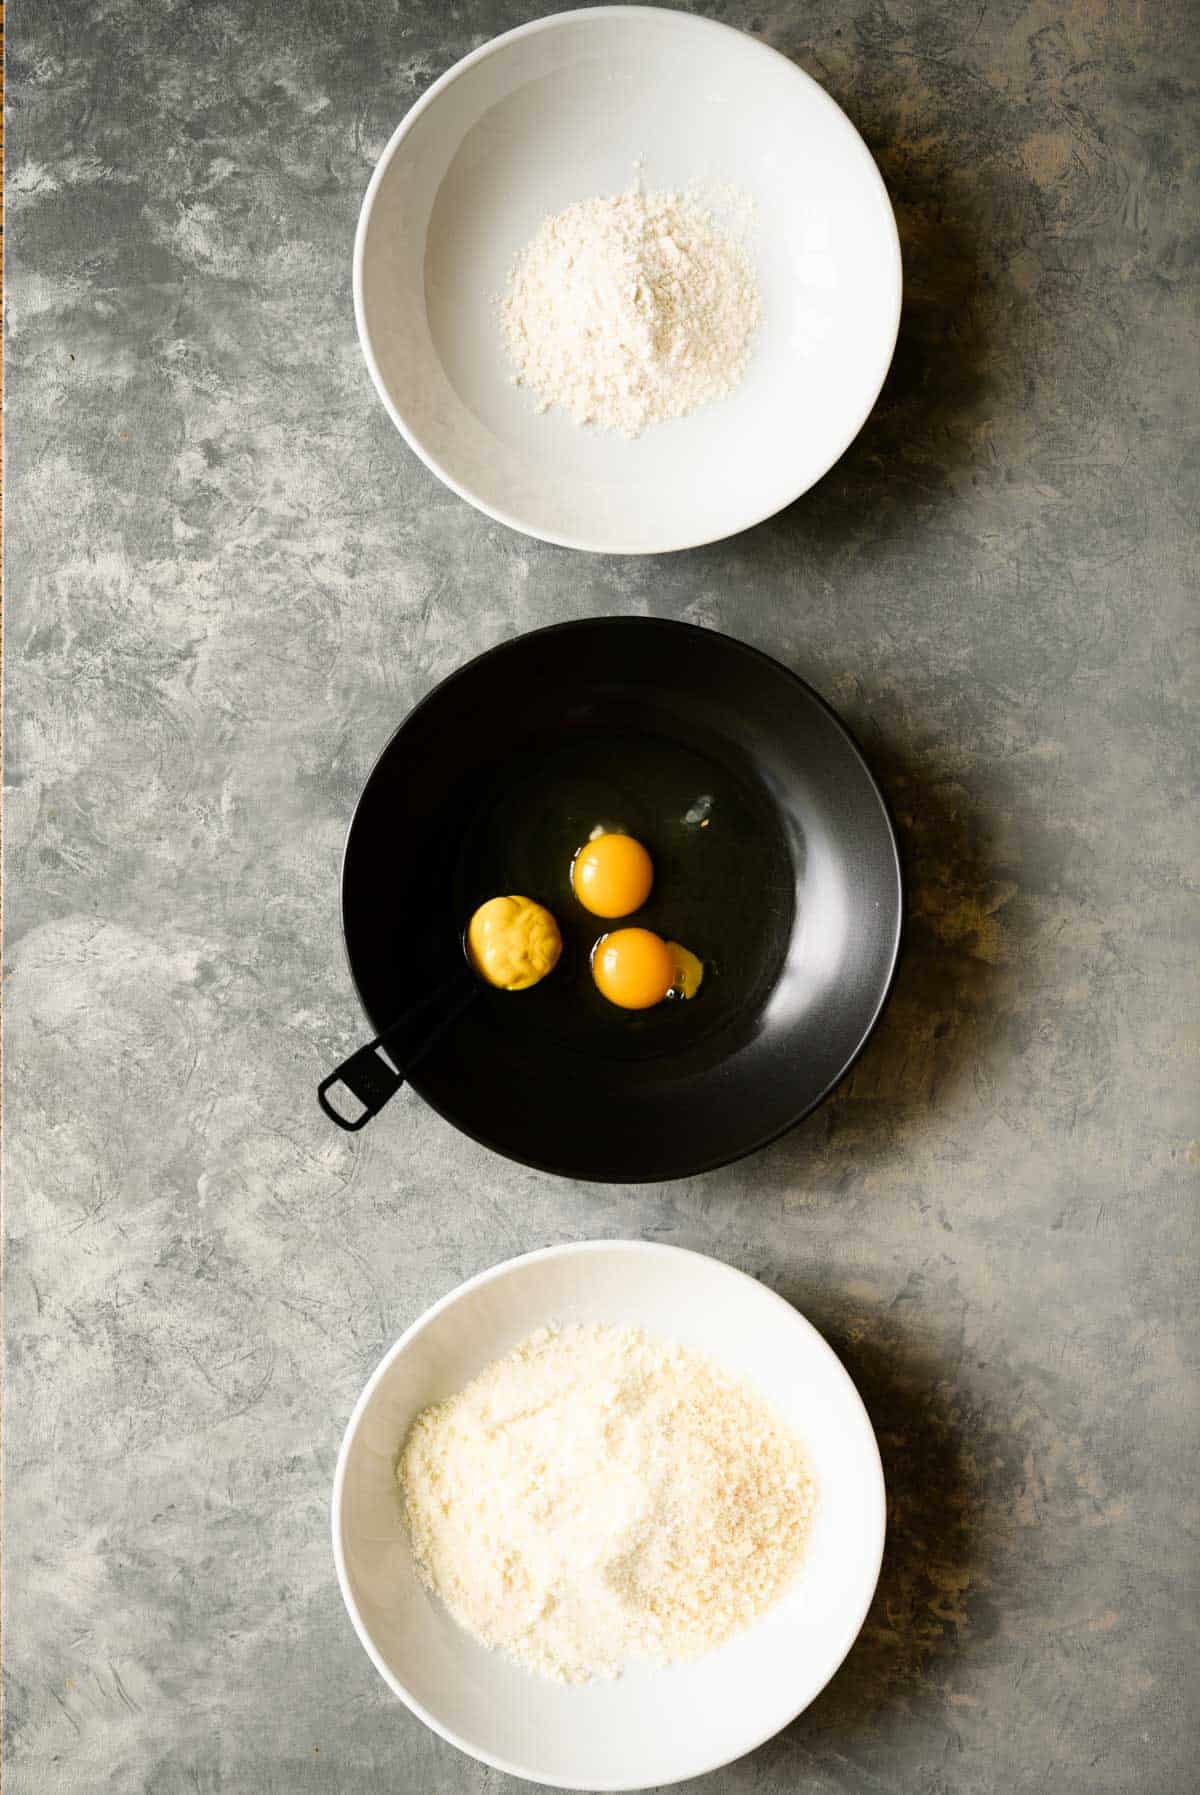 a white bowl with flour, a black bowl with eggs and mustard , and a white bowl of breadcrumbs